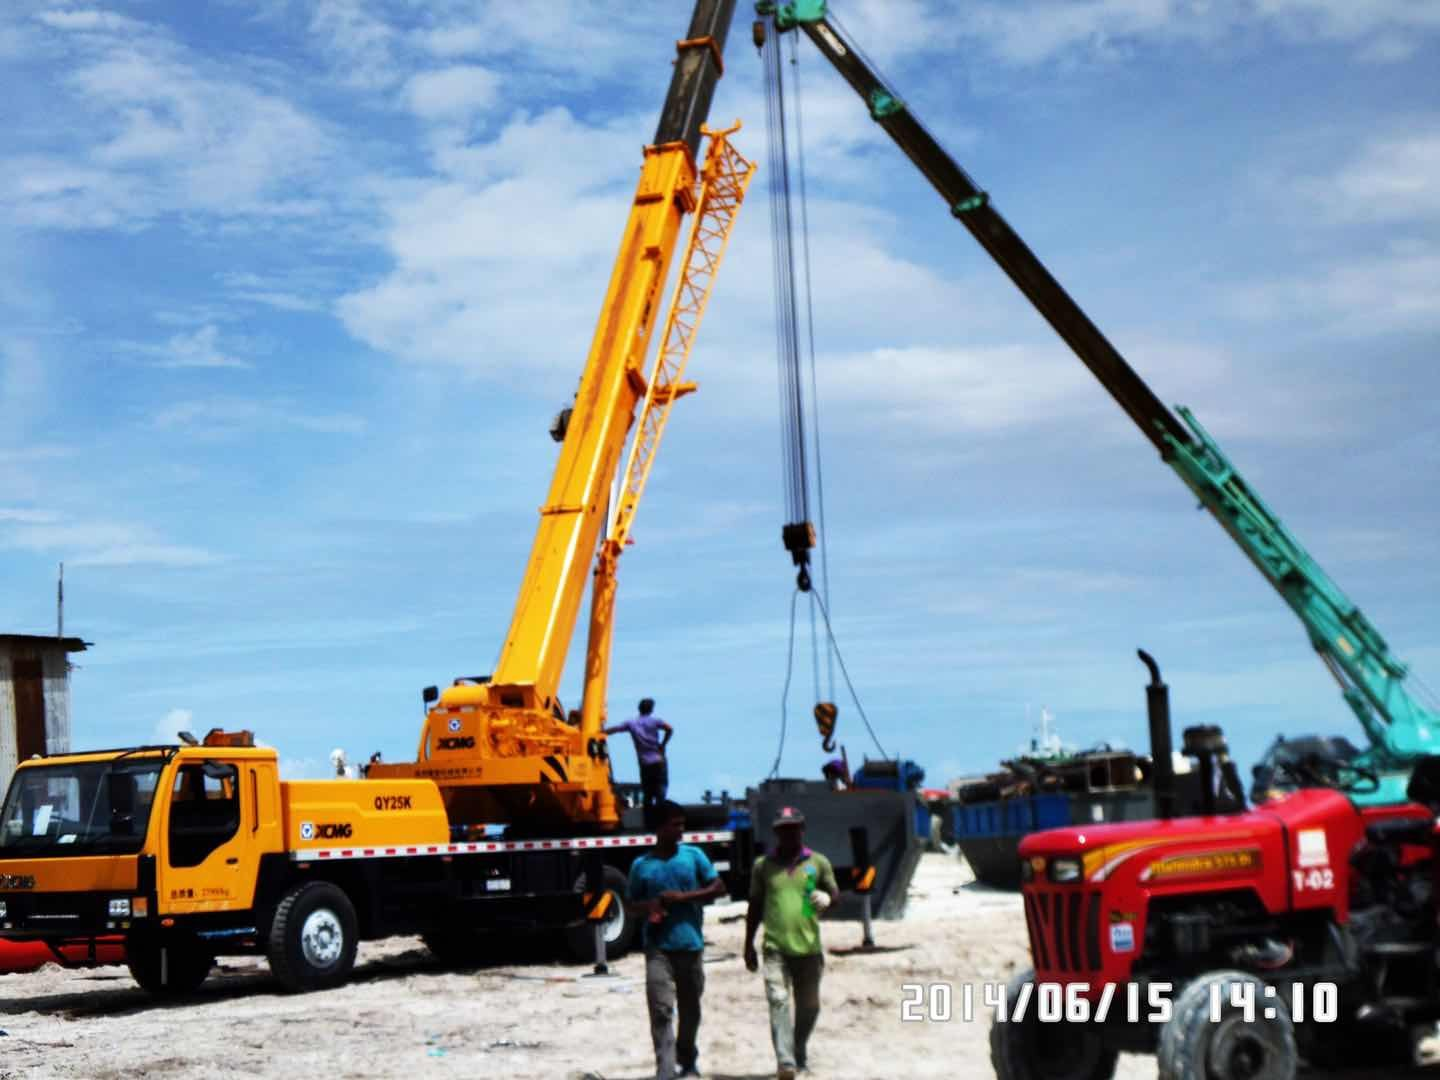 20inch 4000m3/h Cutter Suction Dredger for Maldives Land Reclamation Project Manufacturers, 20inch 4000m3/h Cutter Suction Dredger for Maldives Land Reclamation Project Factory, Supply 20inch 4000m3/h Cutter Suction Dredger for Maldives Land Reclamation Project